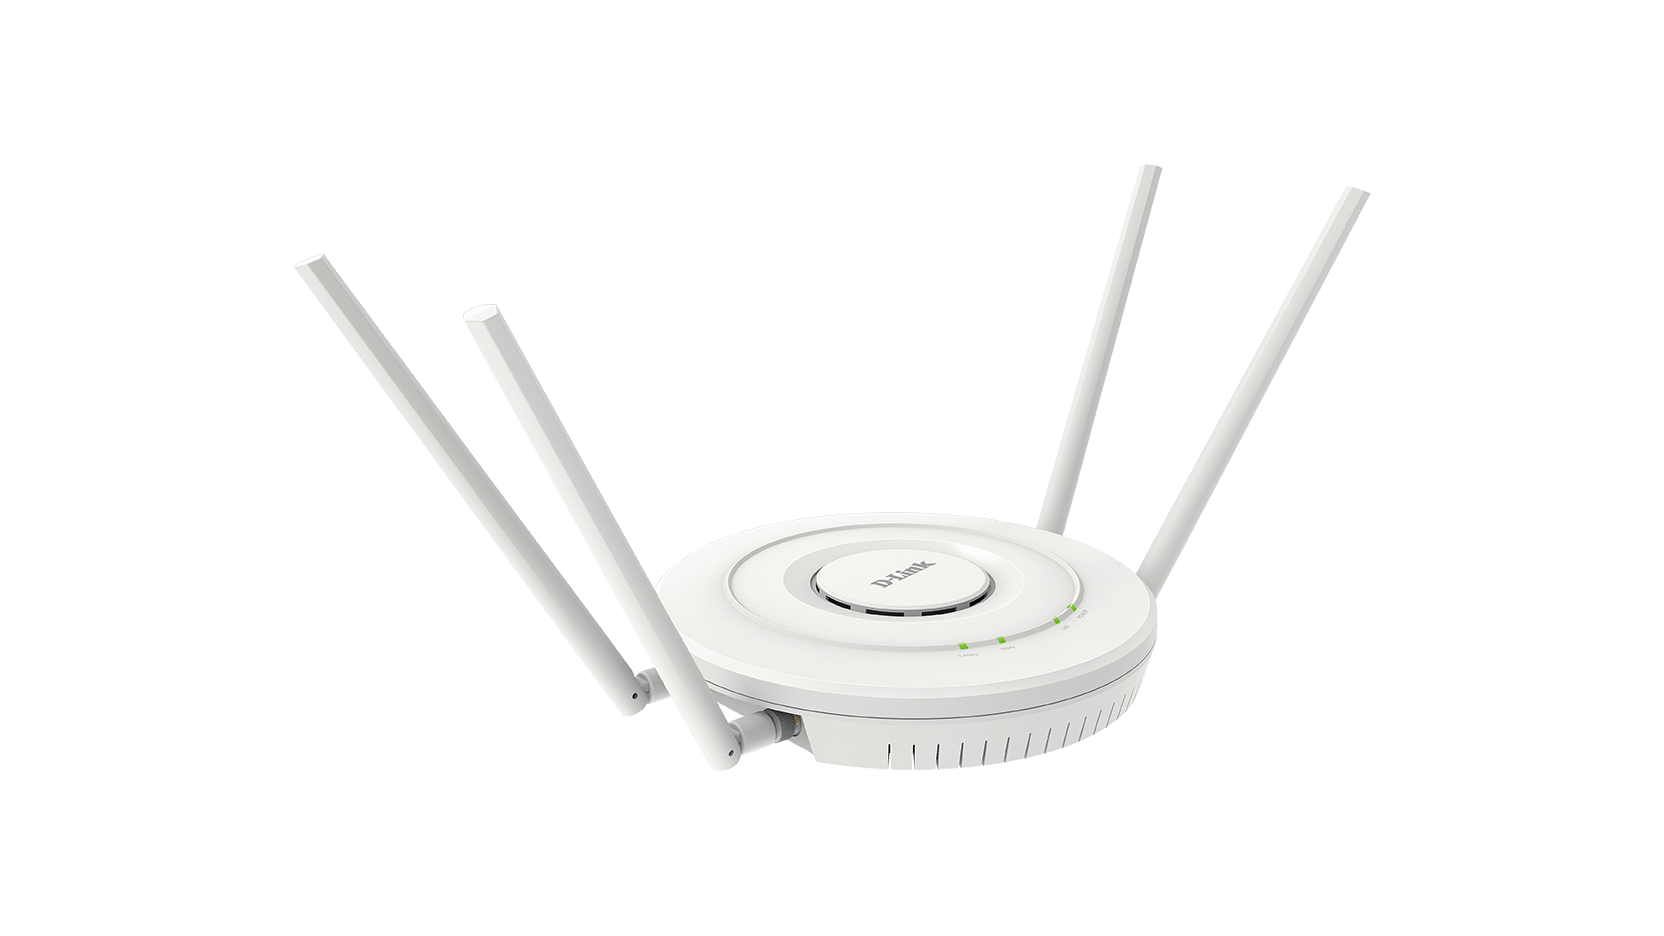 DPE-6610APE Wireless AC1200 Dual-Band Unified Access Point